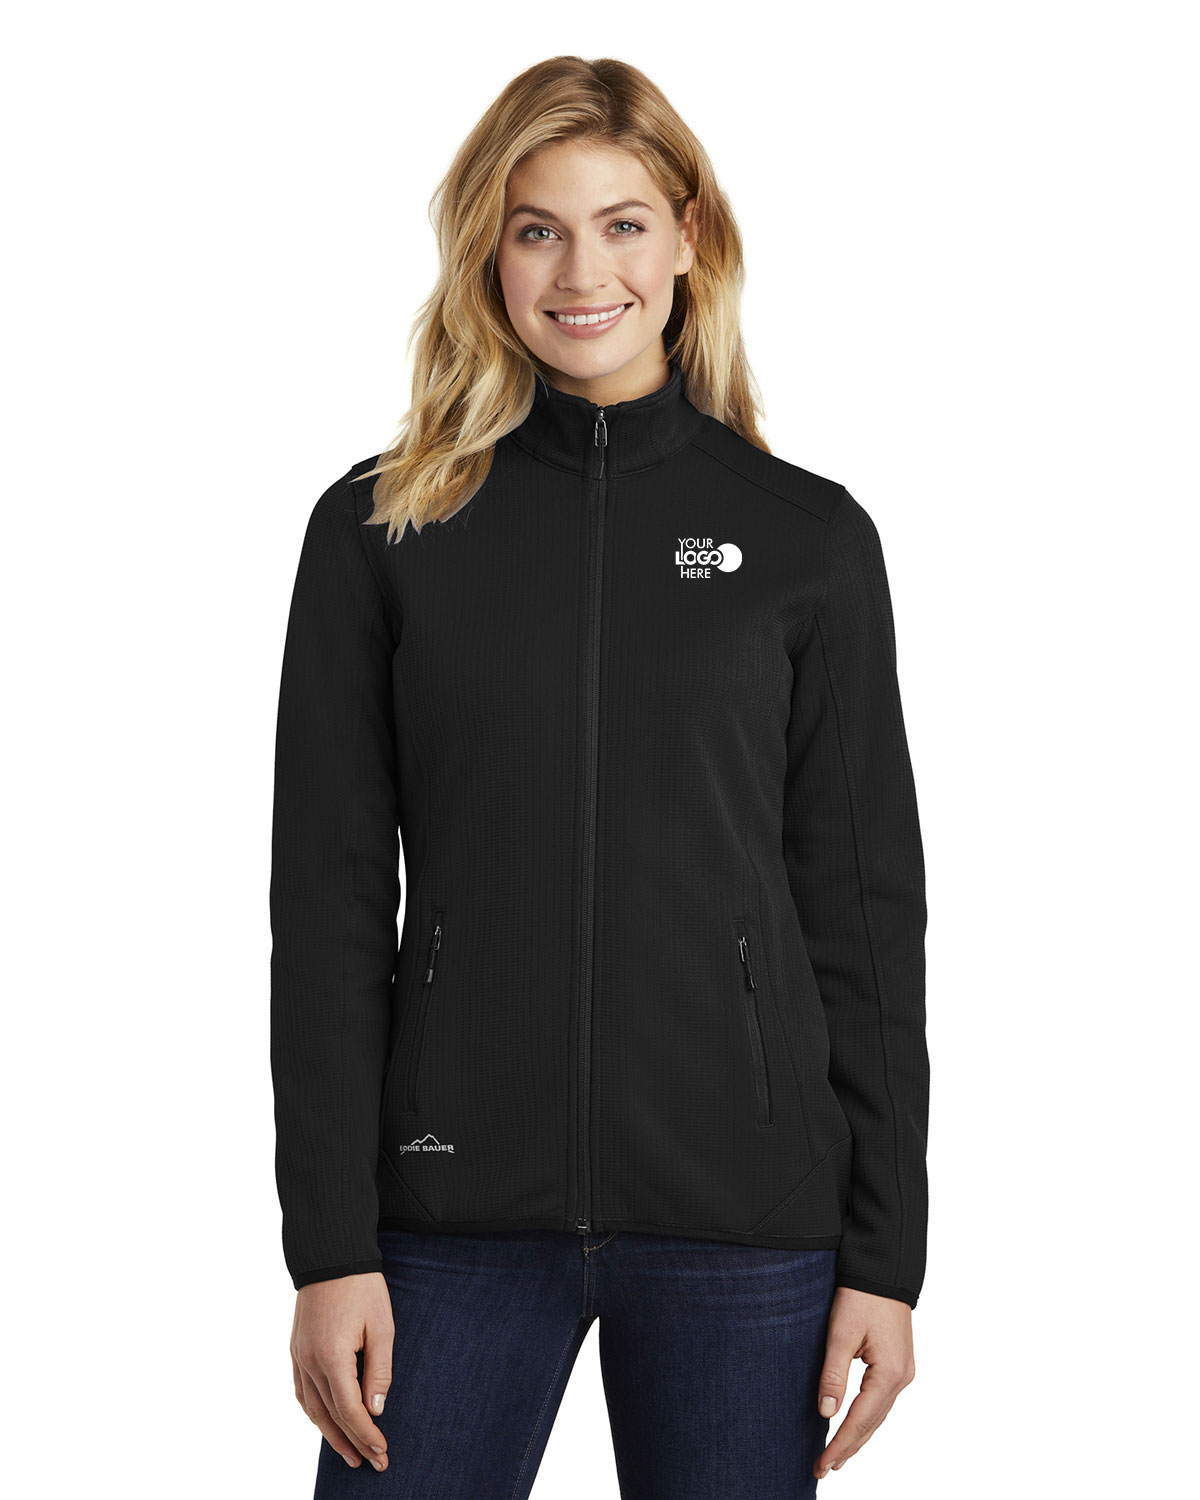 Eddie Bauer EB243 Women Dash Full-Zip Fleece Jacket